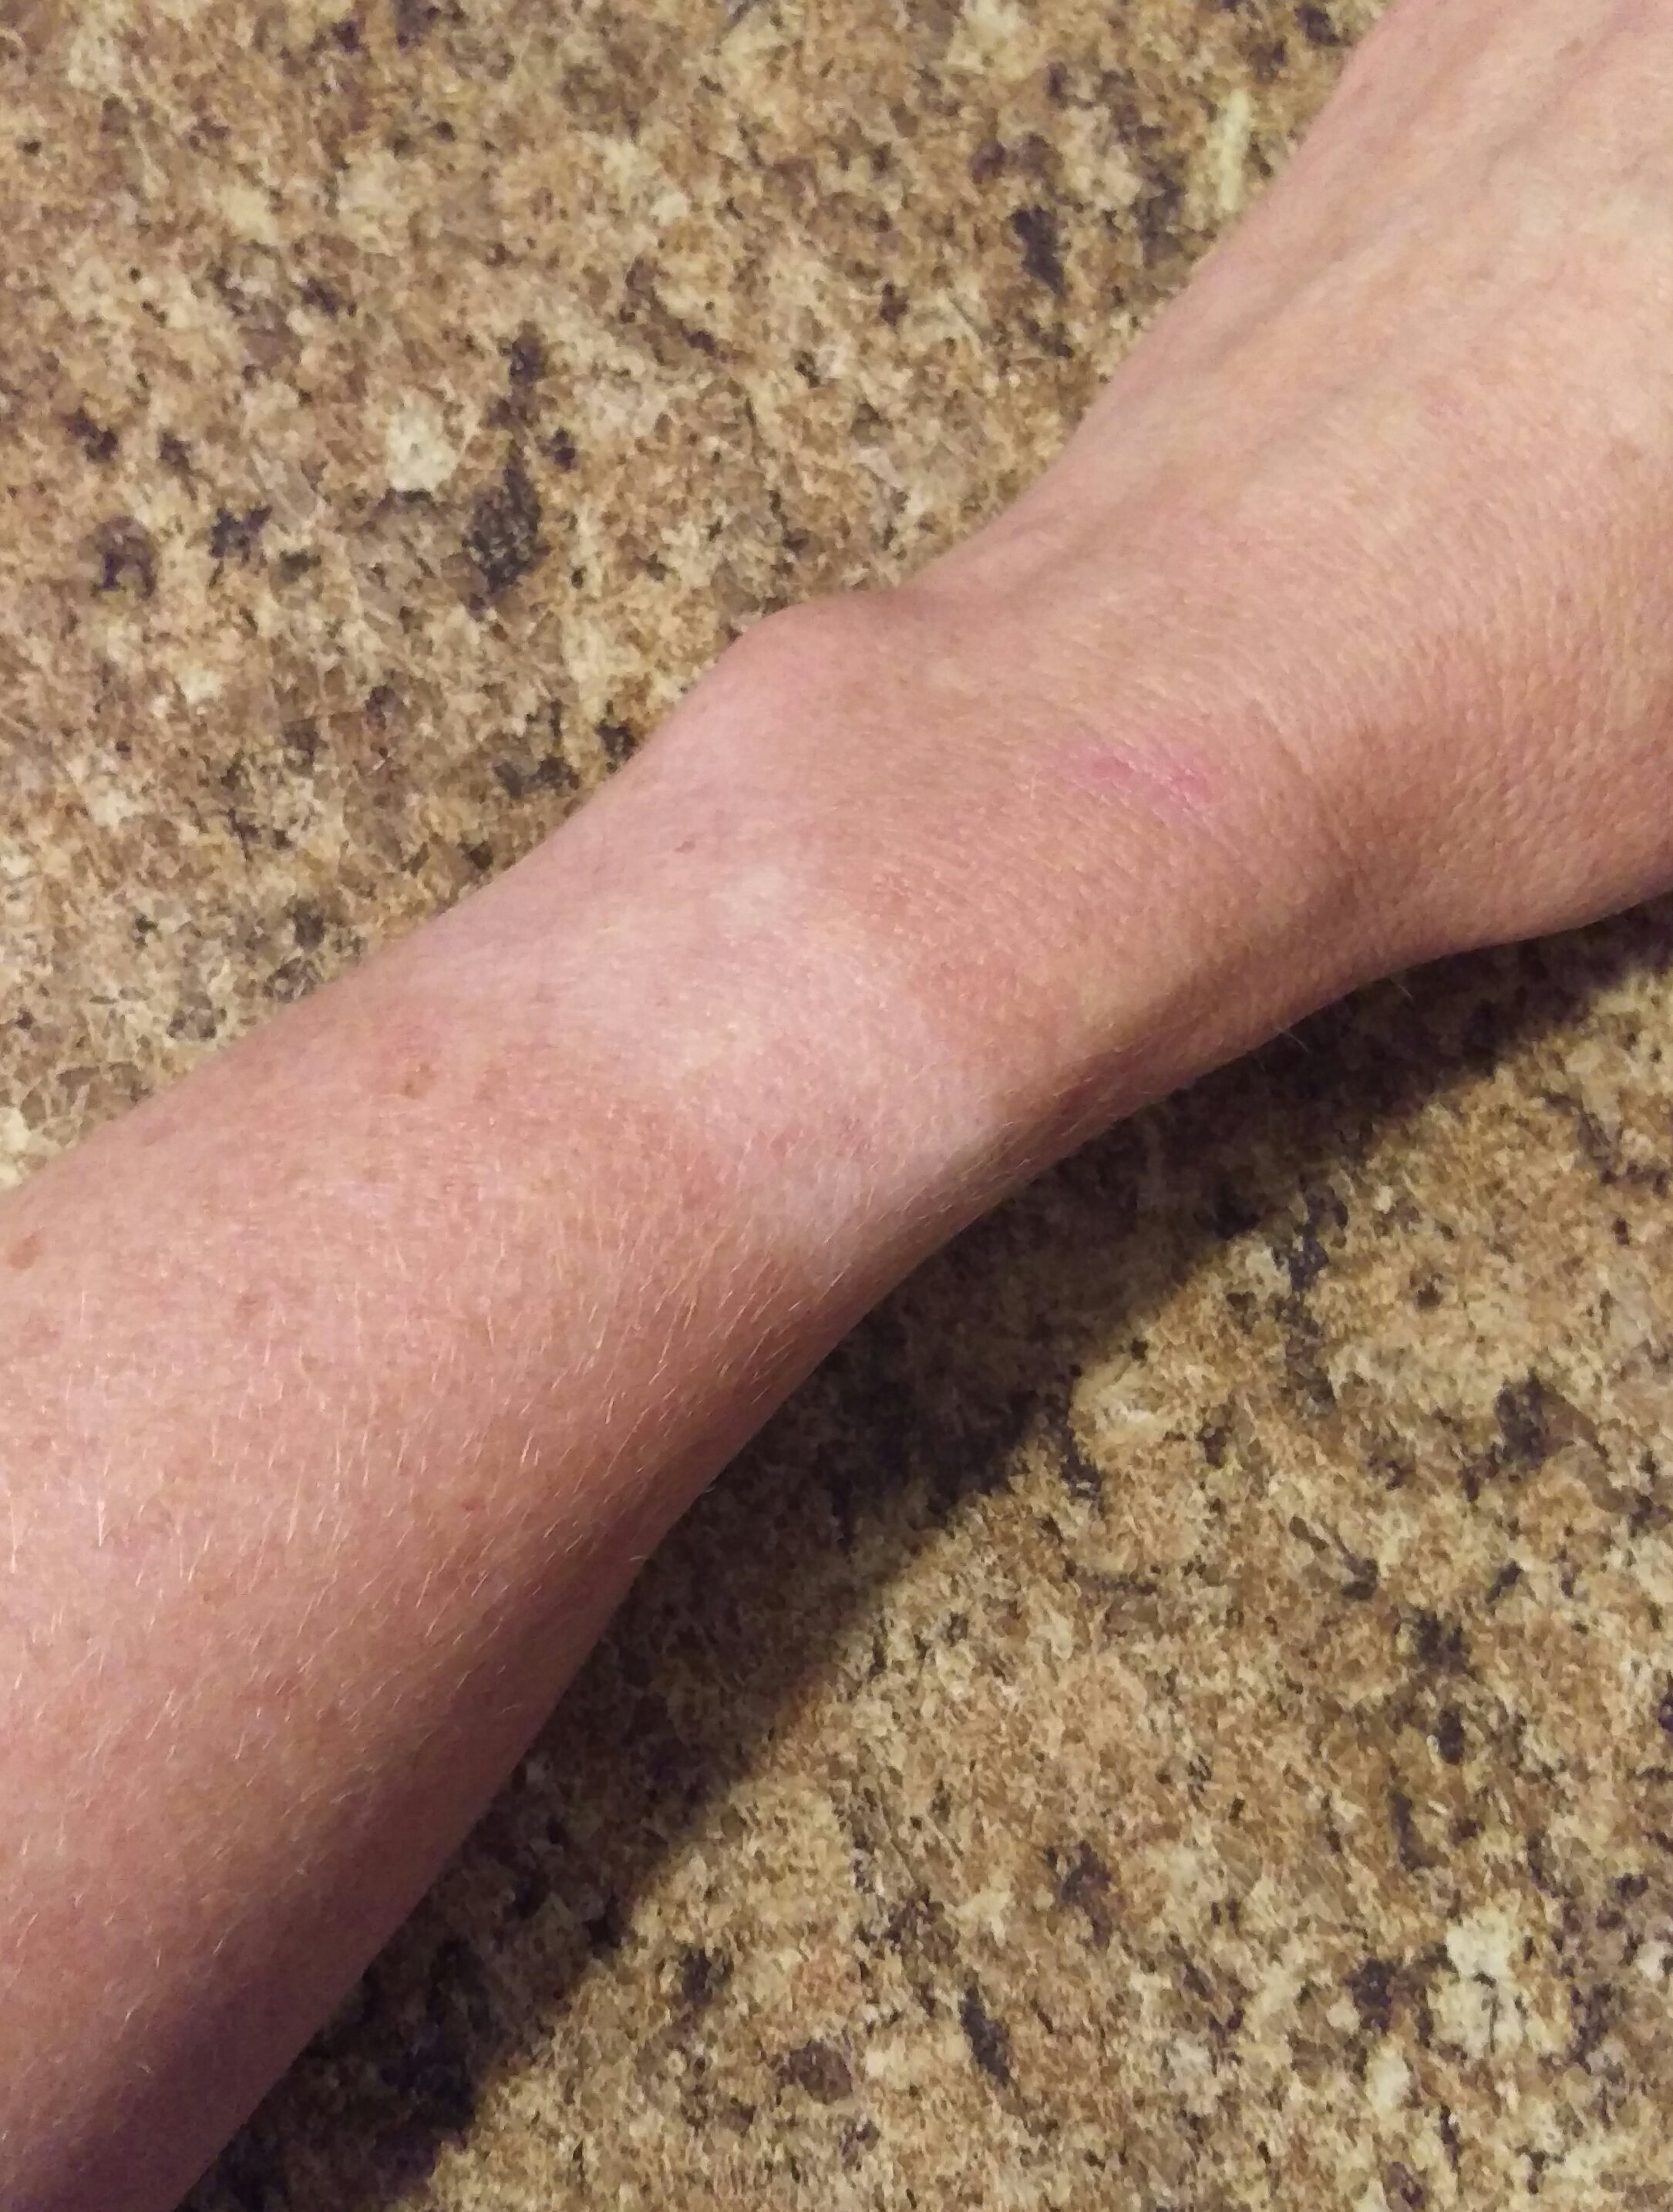 A tan line on a woman's wrist